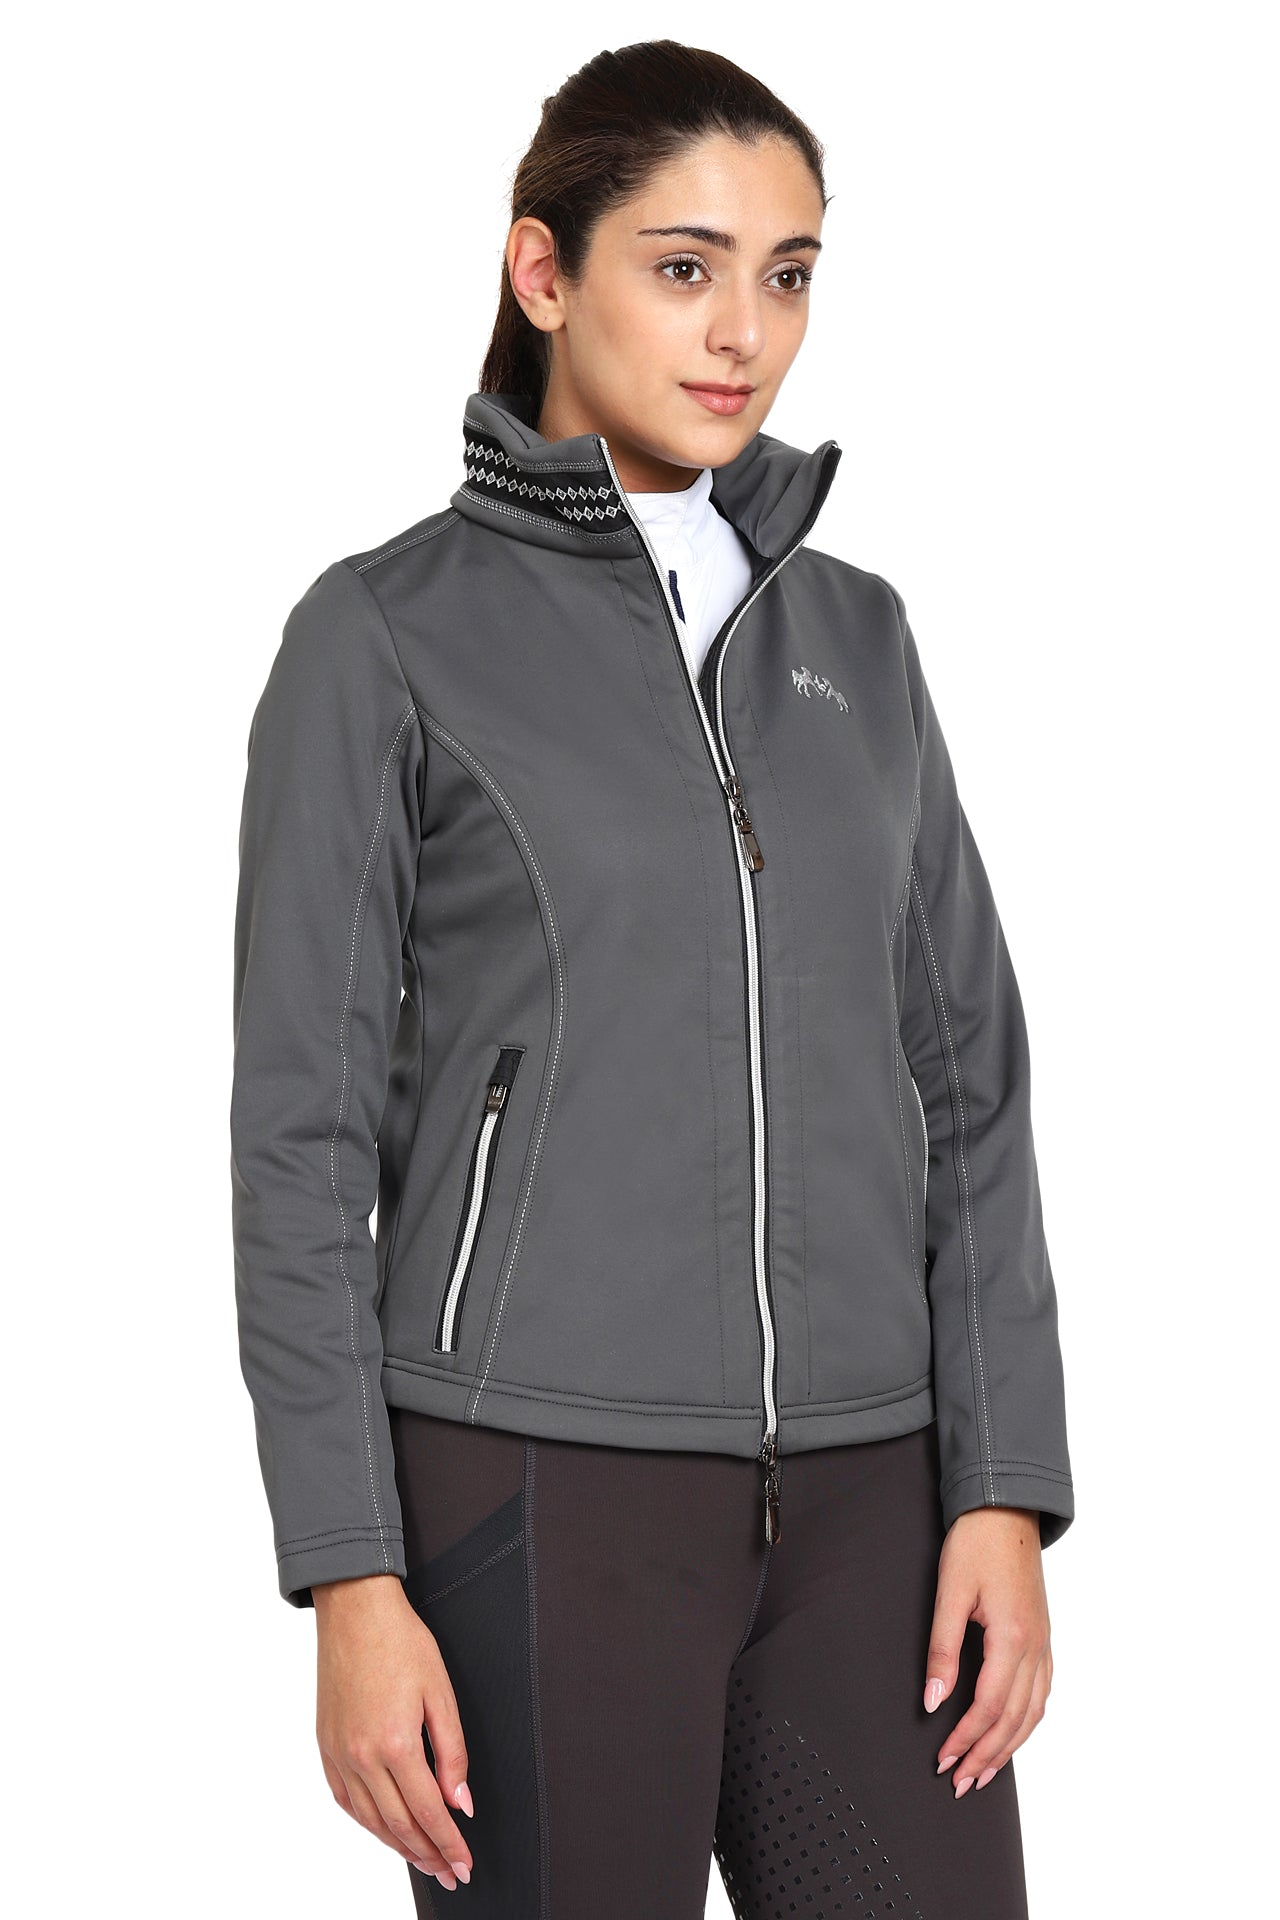 EQUINE COUTURE LADIES BECCA SOFT SHELL JACKET WITH FLEECE_5495